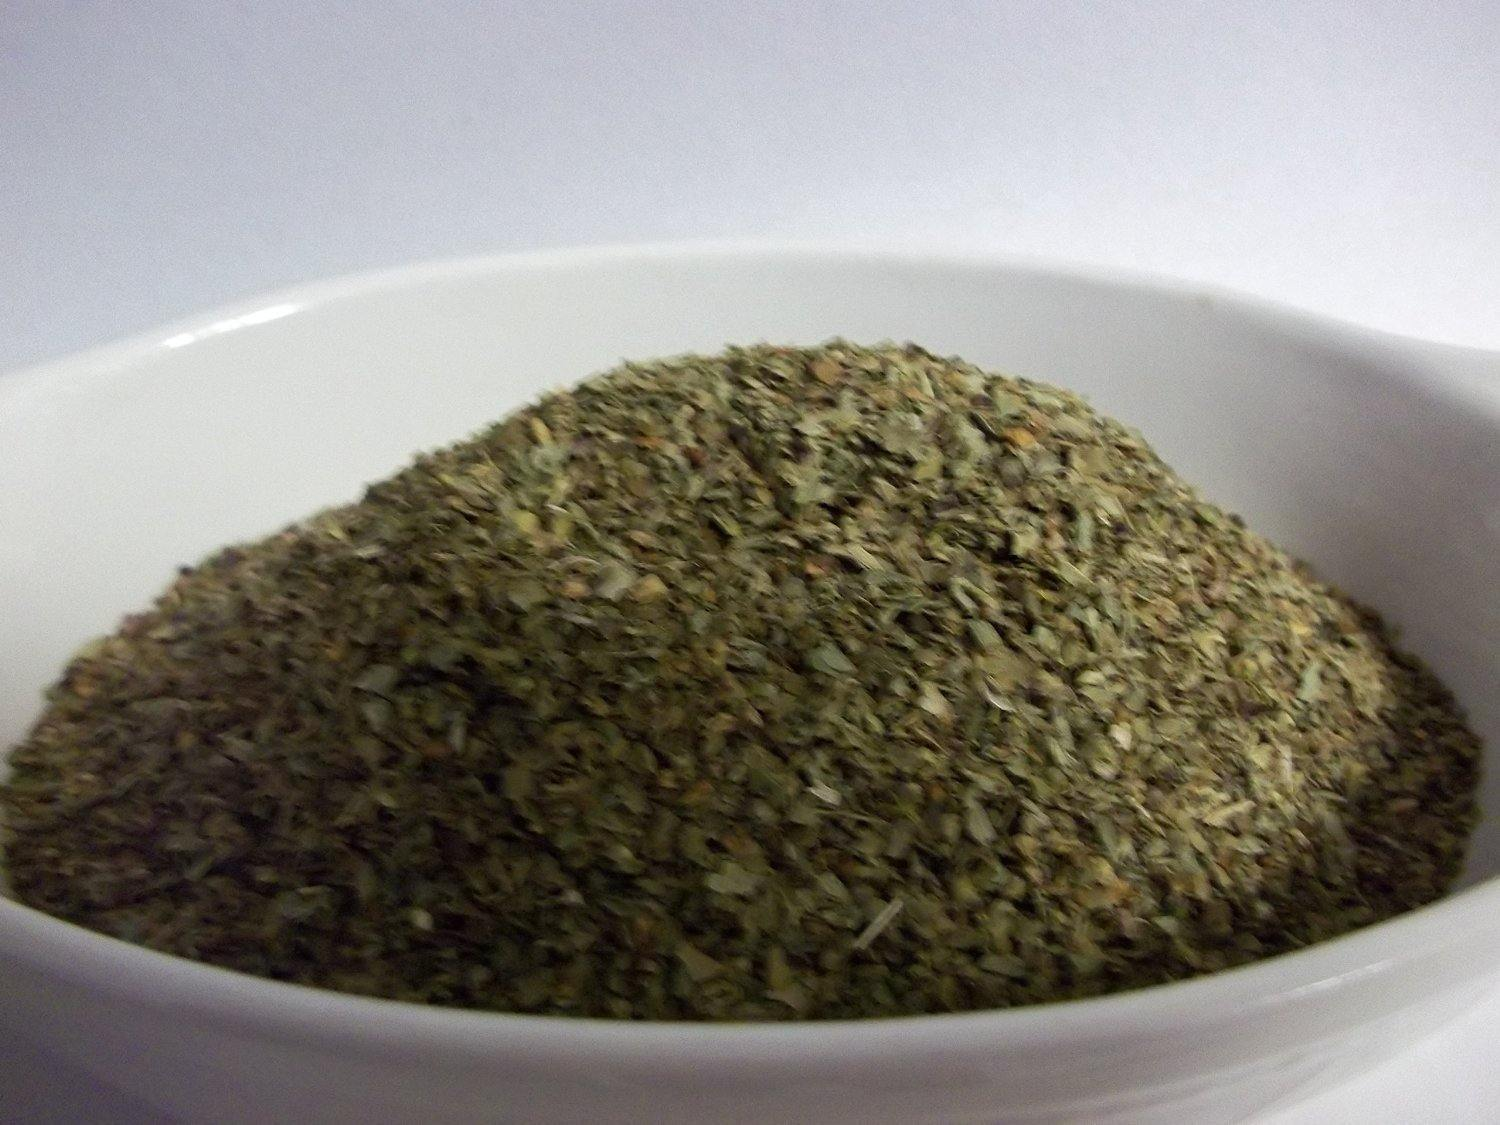 BASIL, SWEET GENOVESE, DRIED N CHOPPED, ORGANIC, SUPERIOR FLAVOR PROFILE - Country Creek LLC